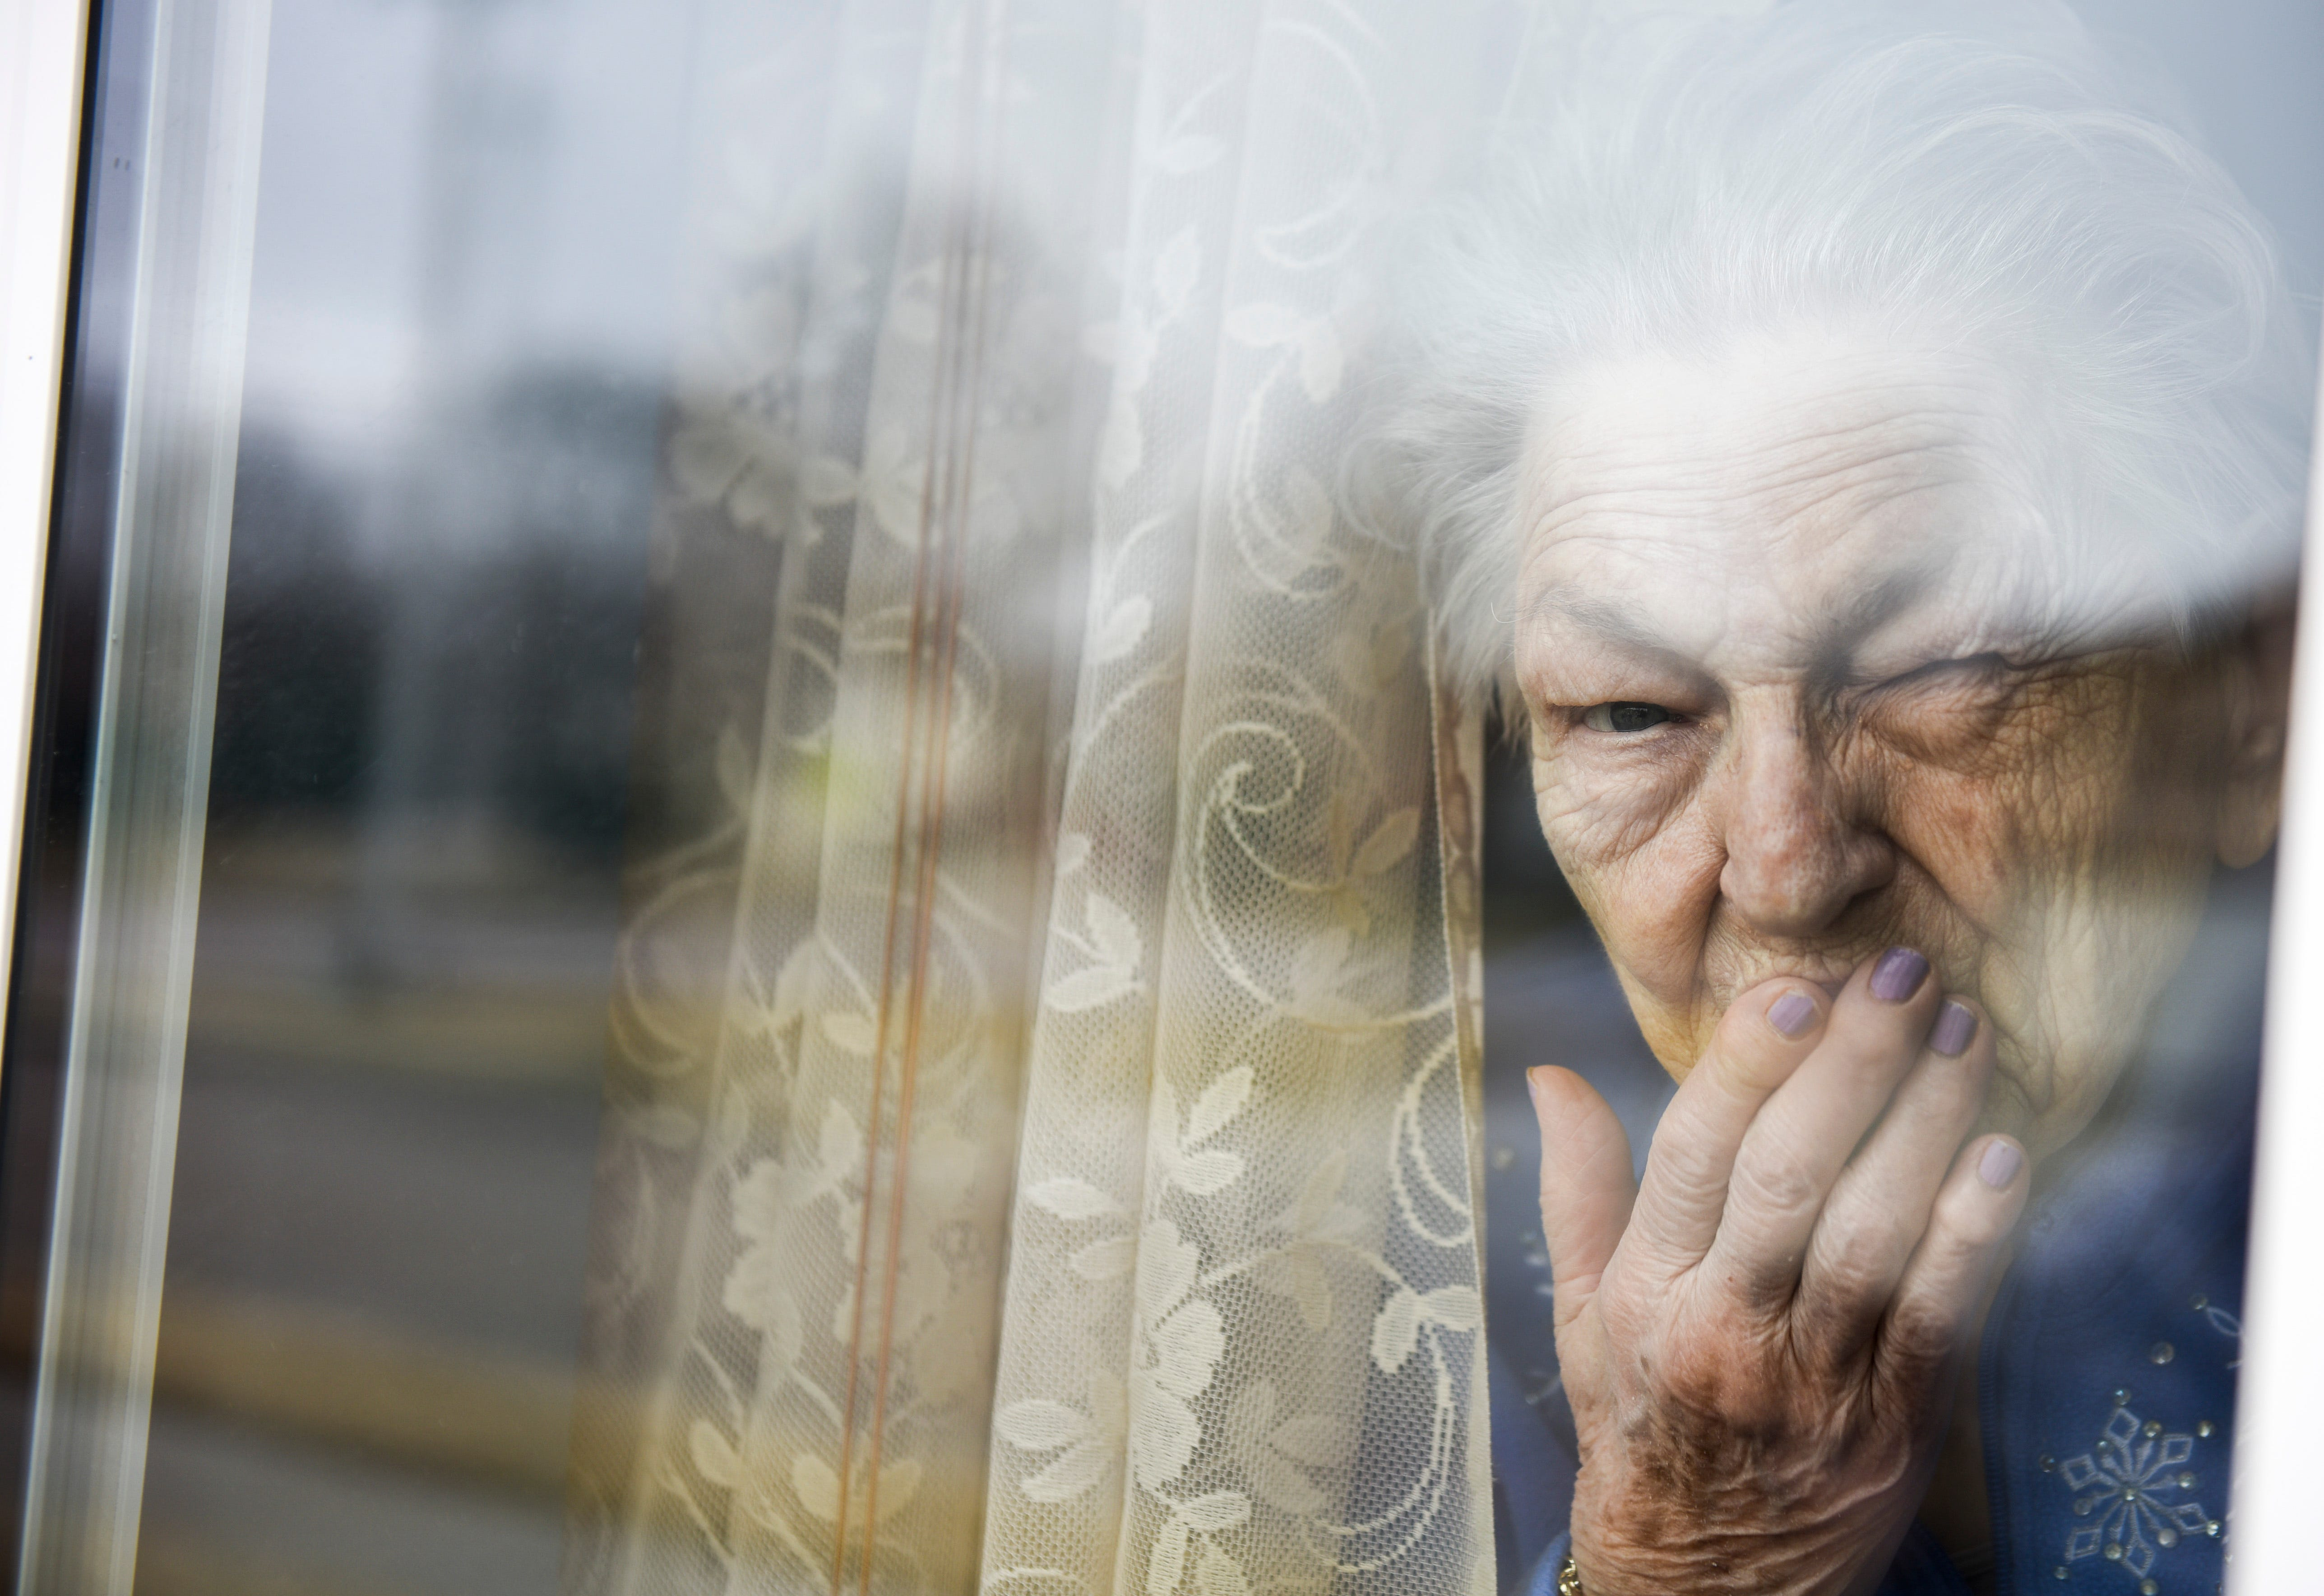 Assisted-living facilities have been the scene of painful separations because of residents' vulnerability to the virus. Marie DeBoer, 92, blows a kiss goodbye to her family March 23 at Edgewood Assisted Living in Sioux Falls, S.D.